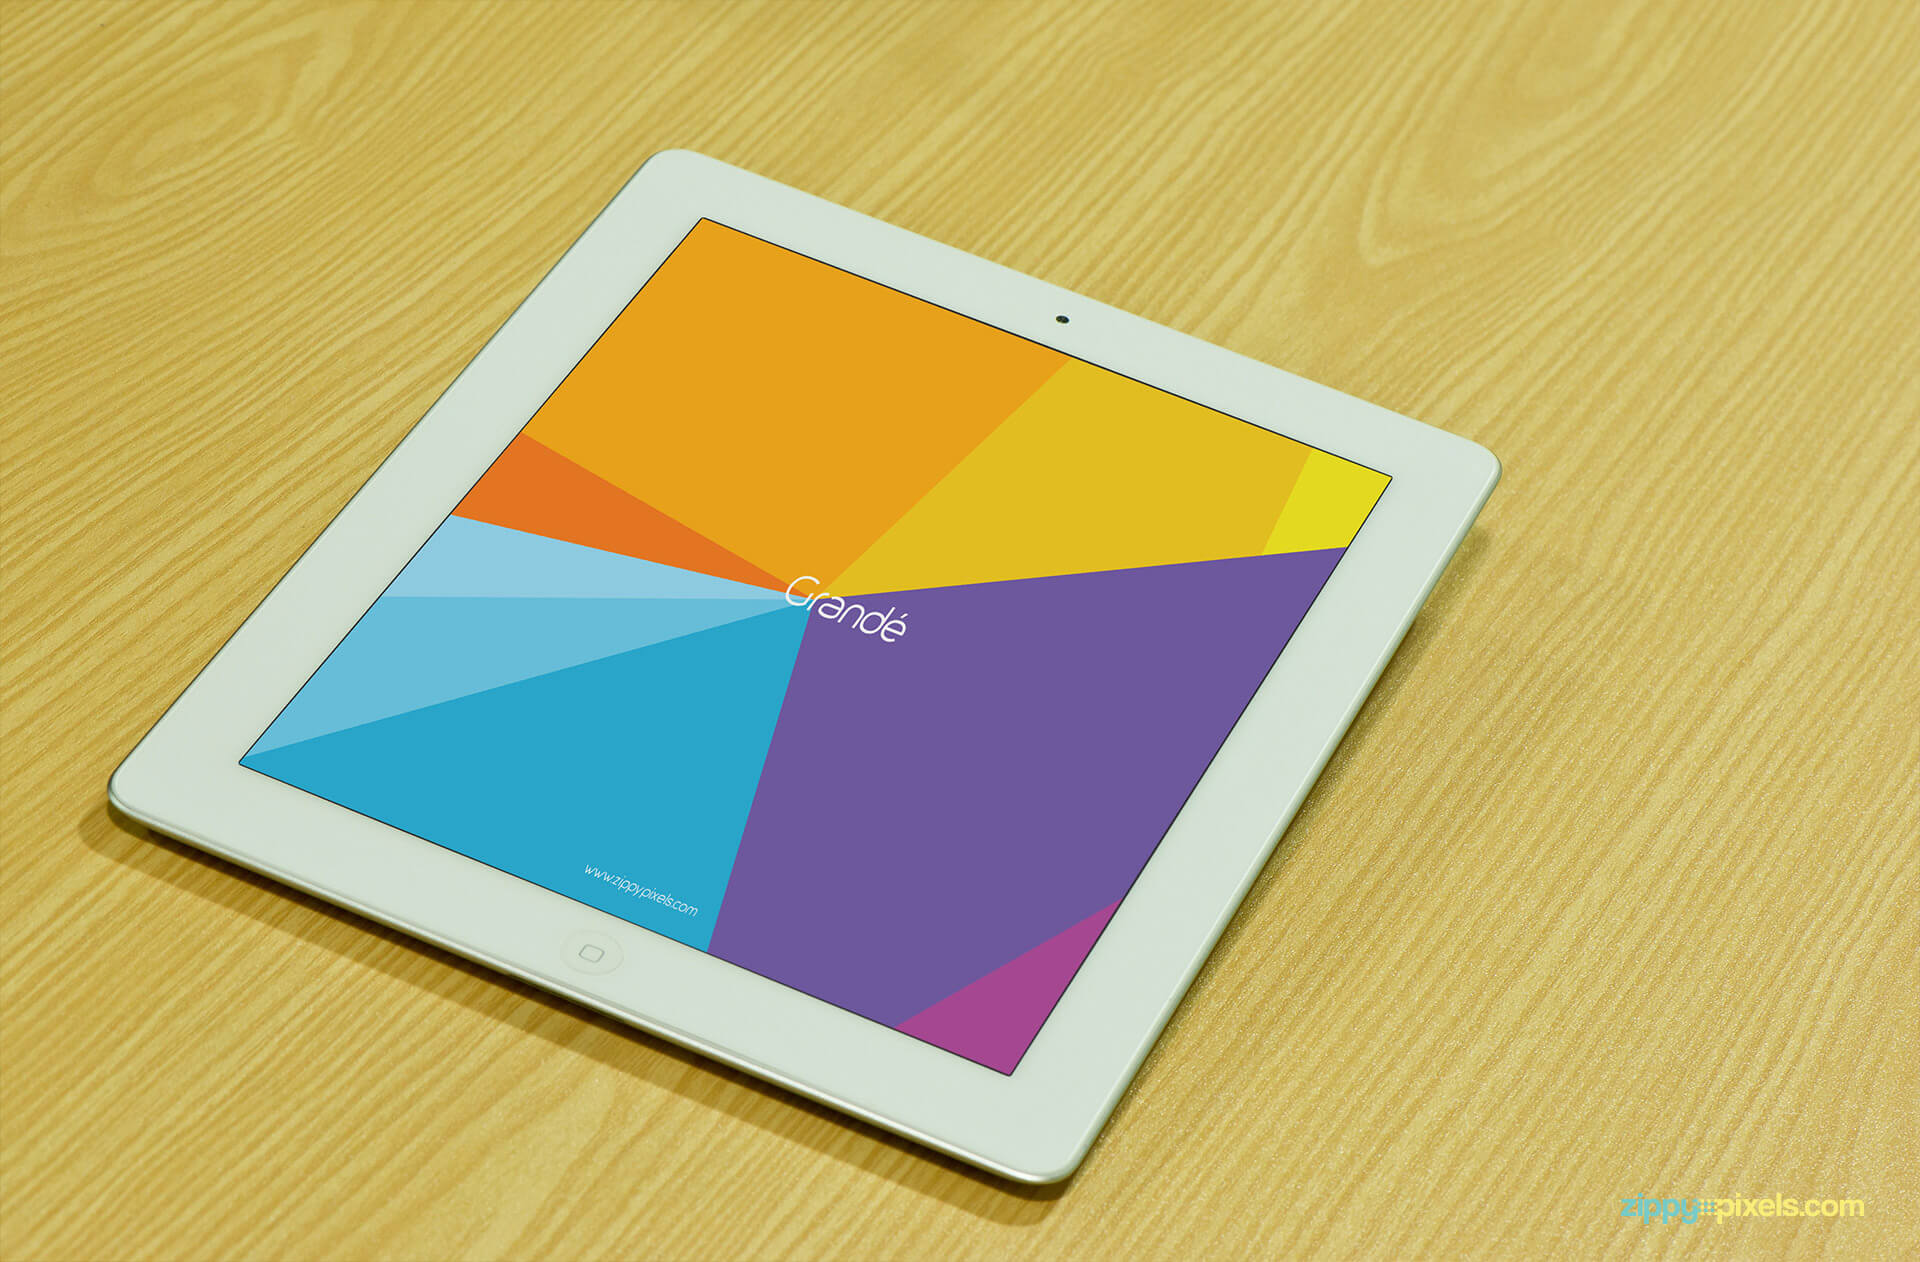 iPad Mockup shows an iPad on Table